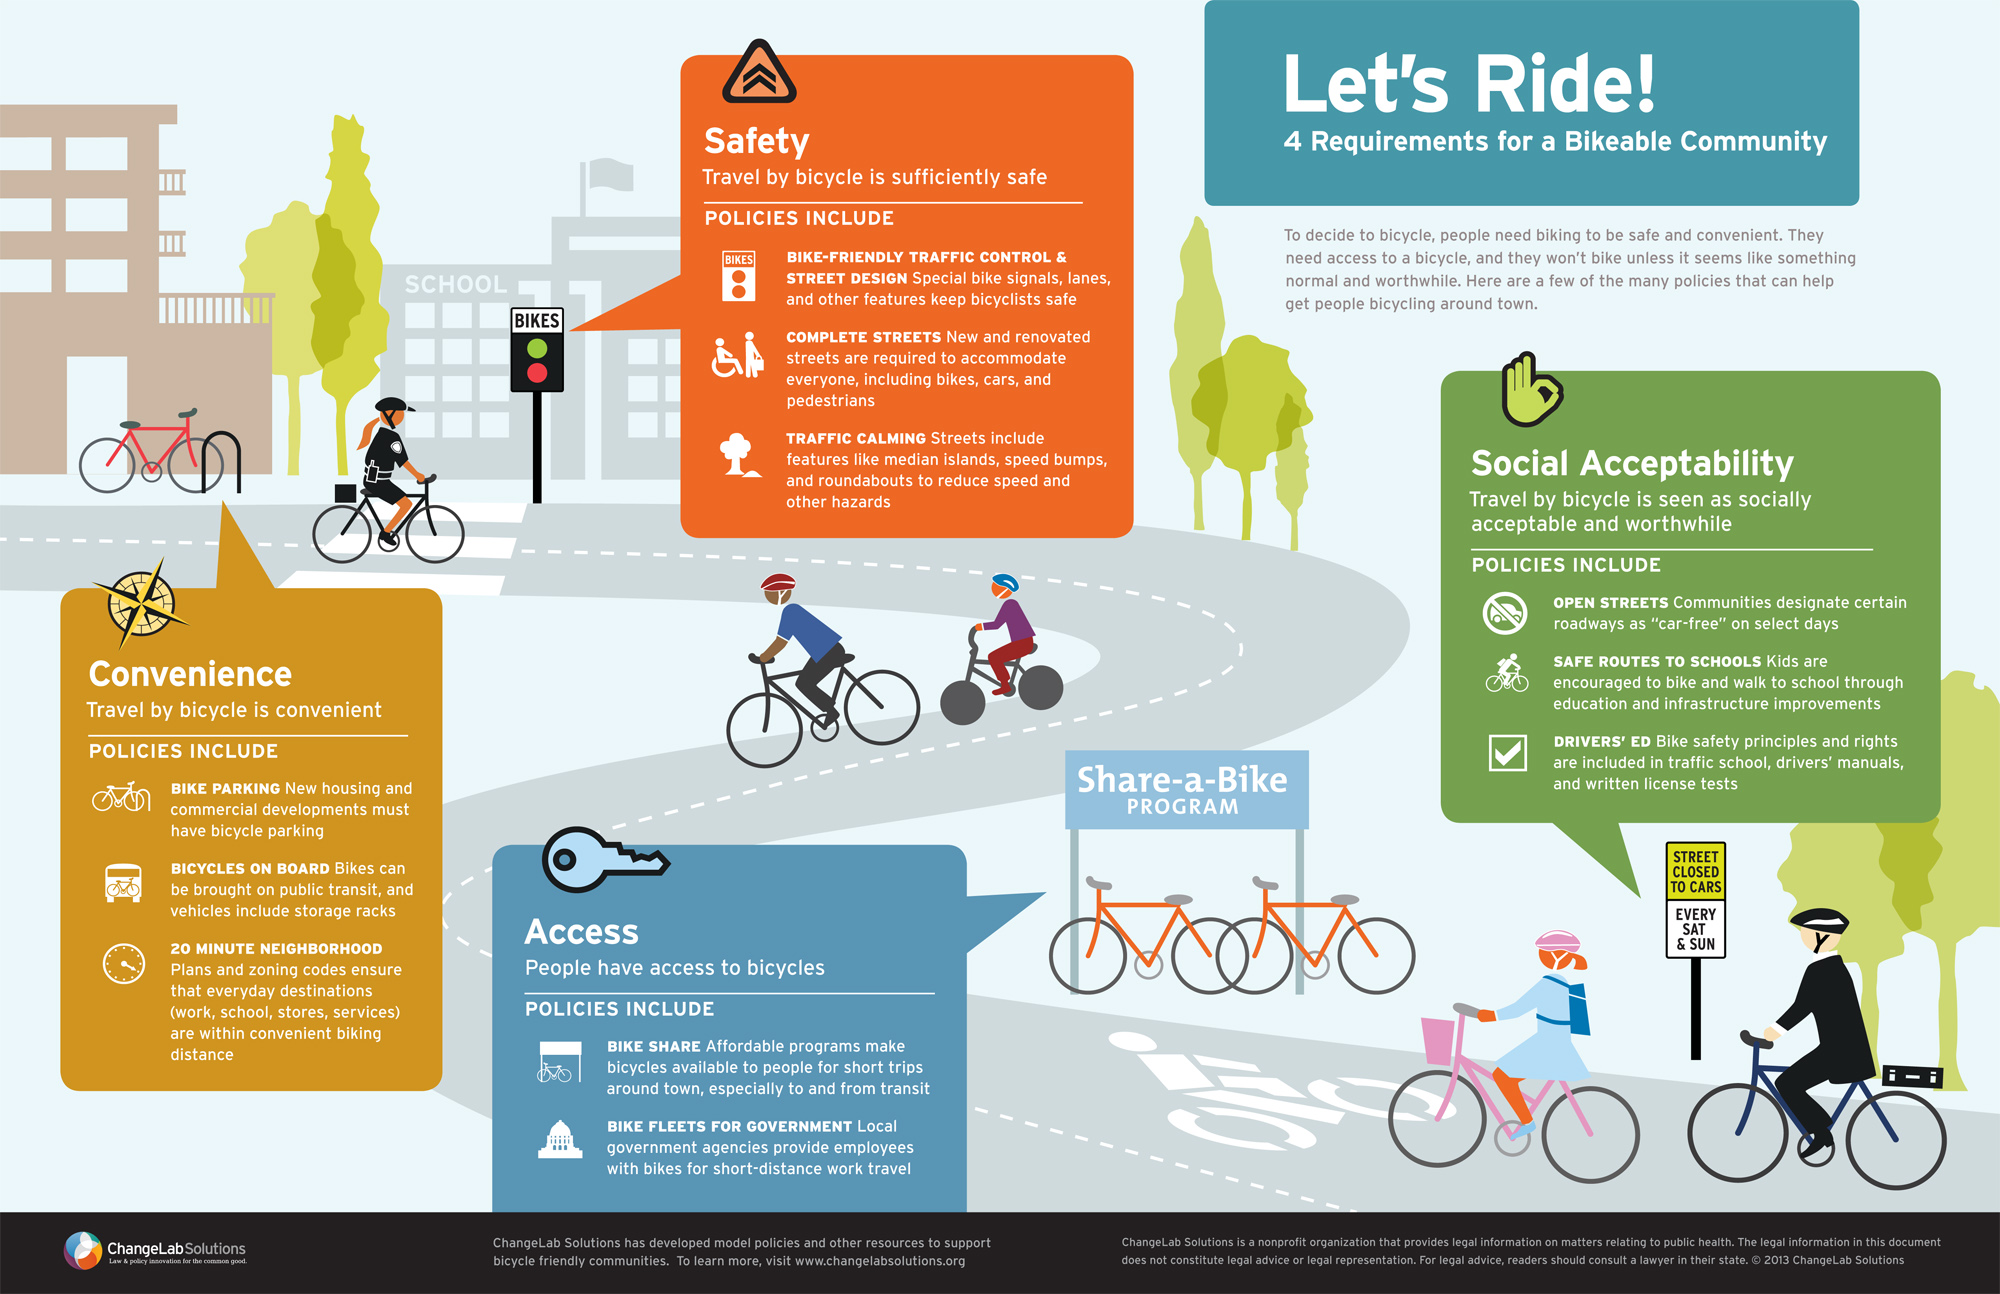 Four Requirements For A Bikeable City Good